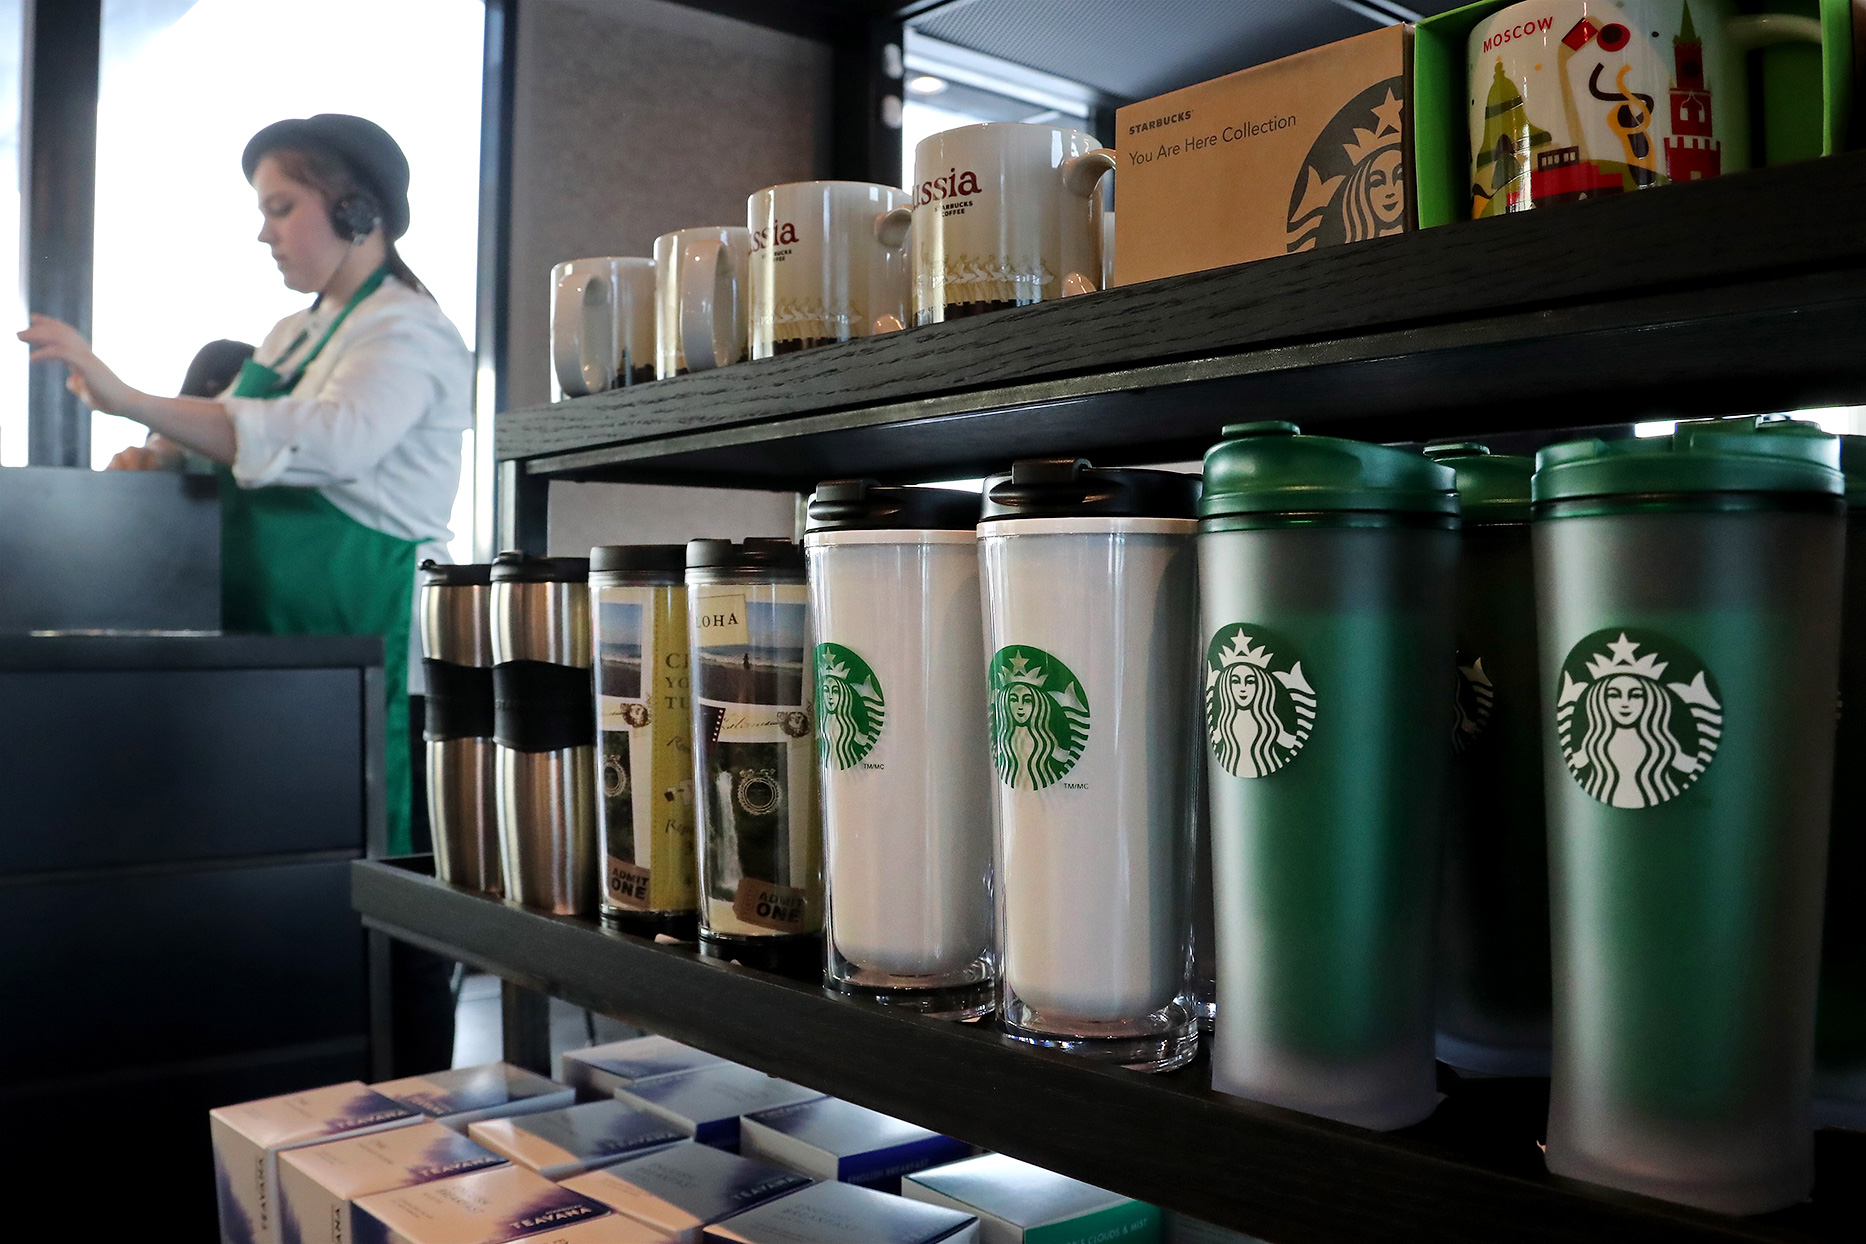 starbucks location with reusable cups